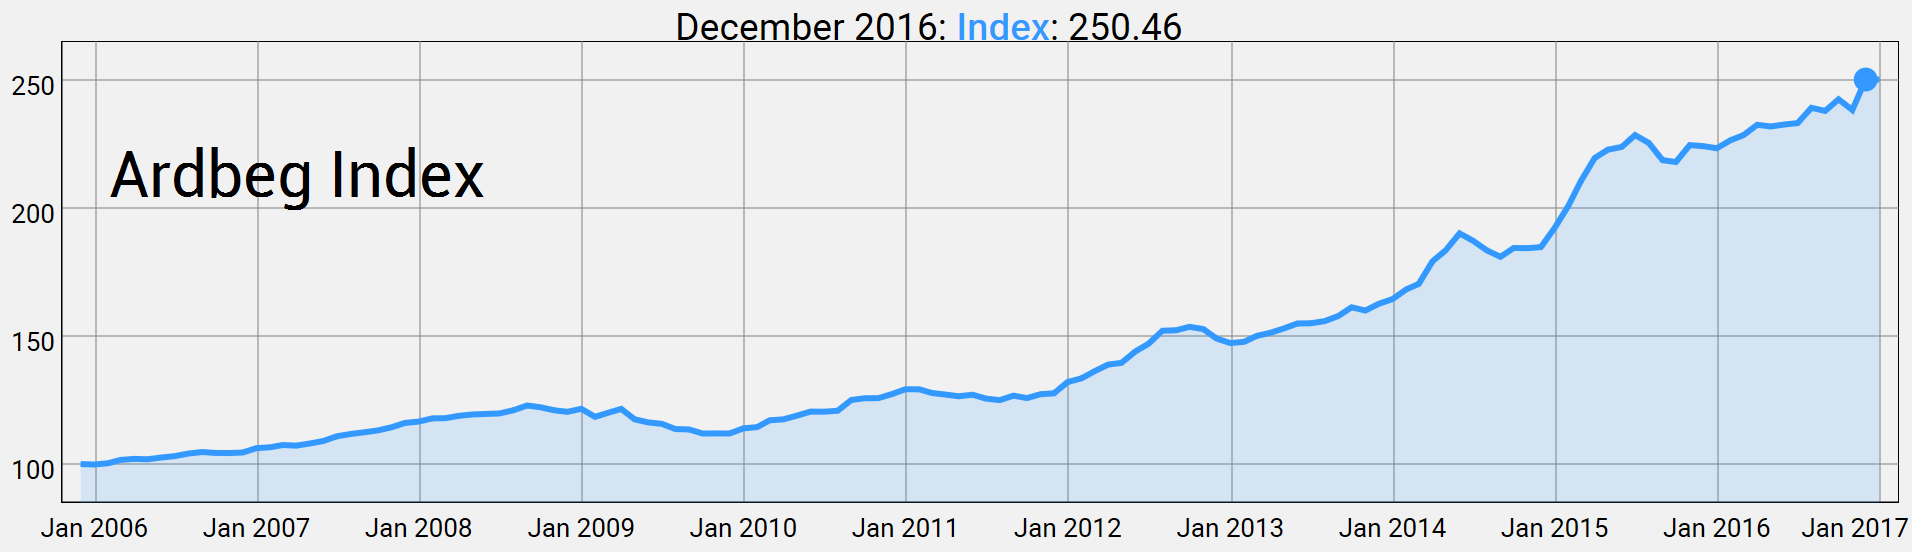 Ardbeg Index by December 2016